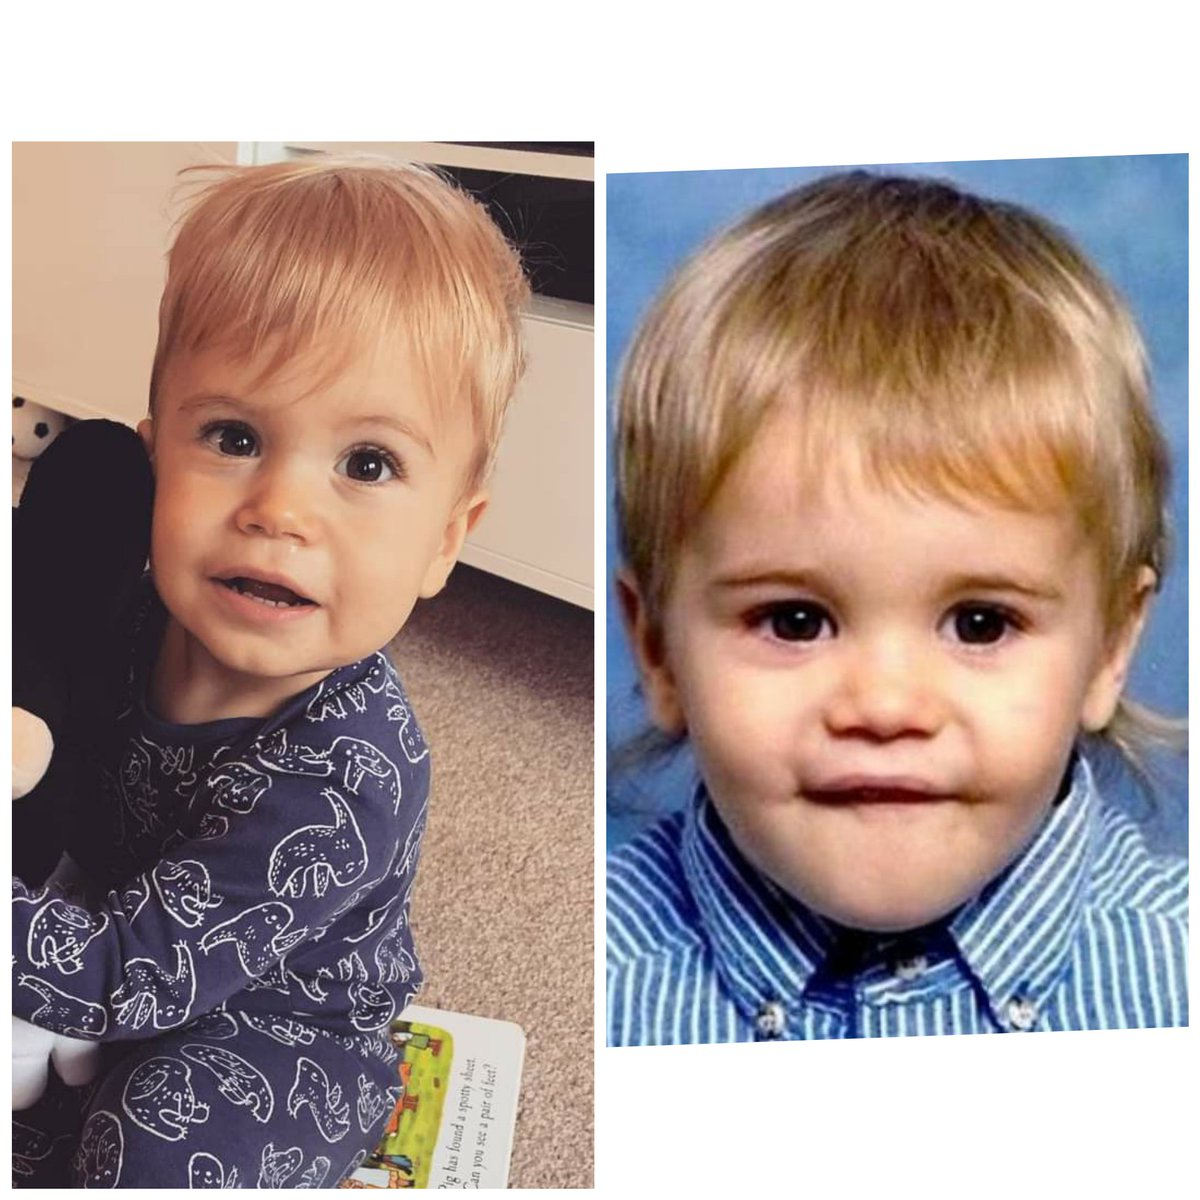 Saw a picture of @justinbieber as a baby and now I want to know if he was in Manchester around the time my lad was conceived 🤣🤣🤣 https://t.co/T5HHNJ3dJk